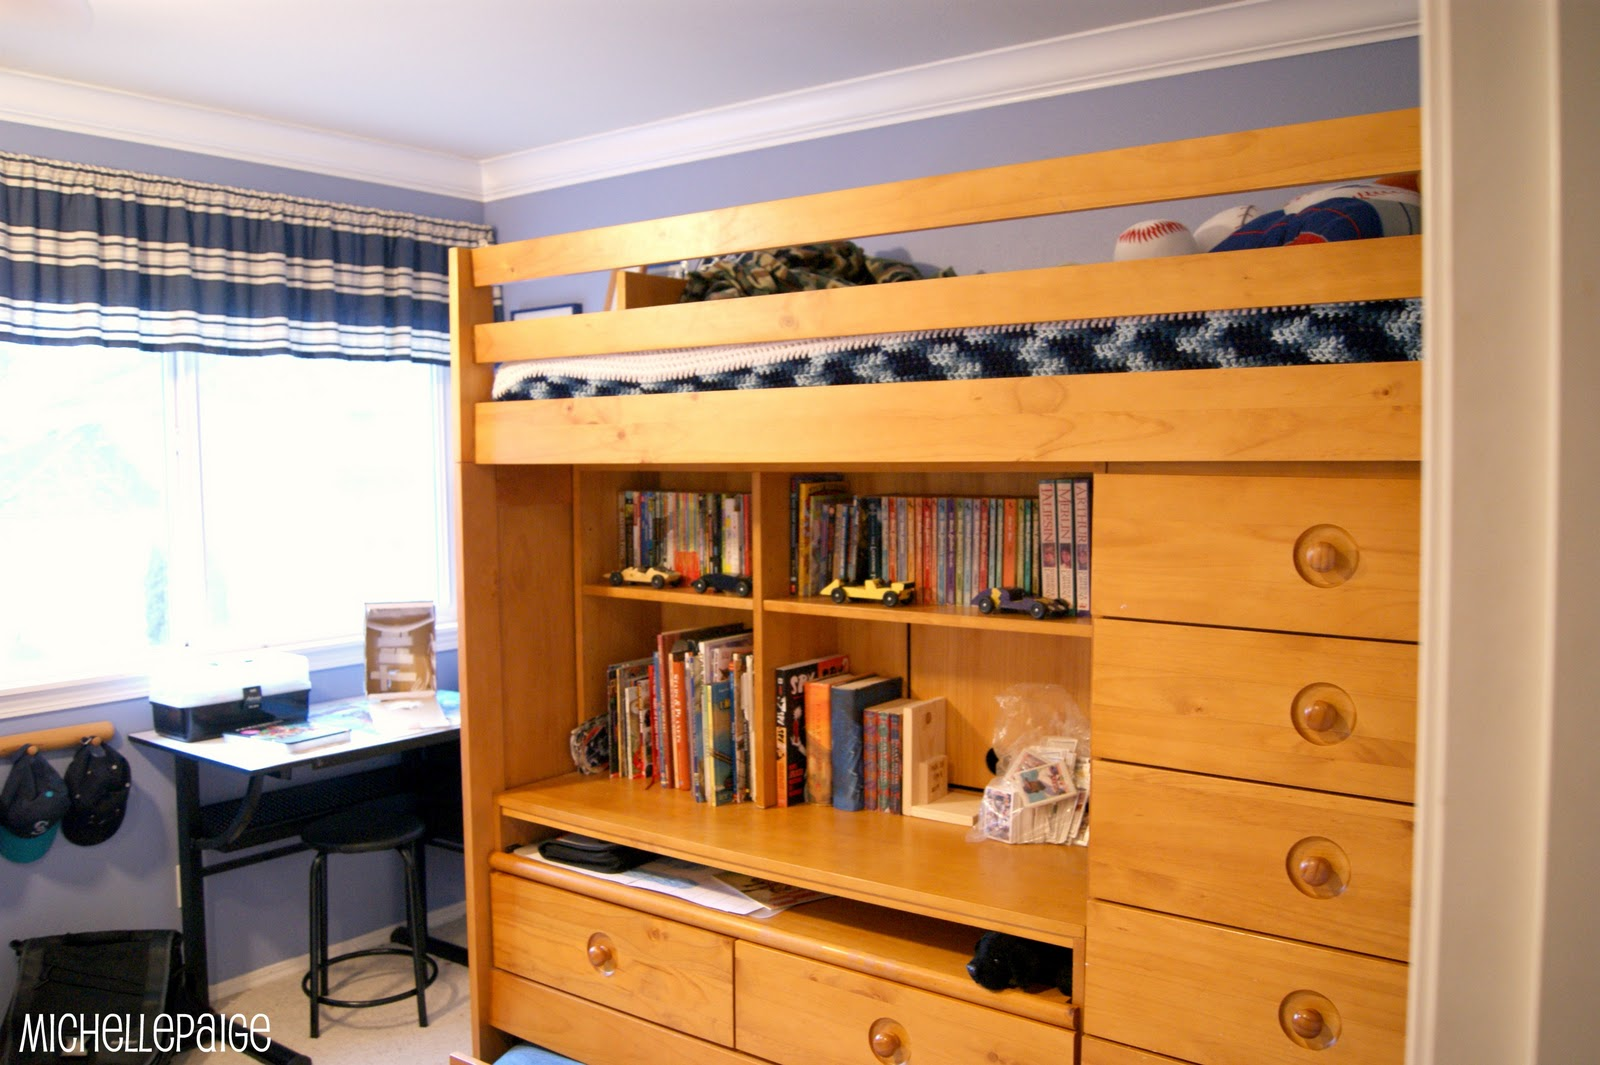 Michelle Paige Blogs: Organizing A Crafty Kid's Room